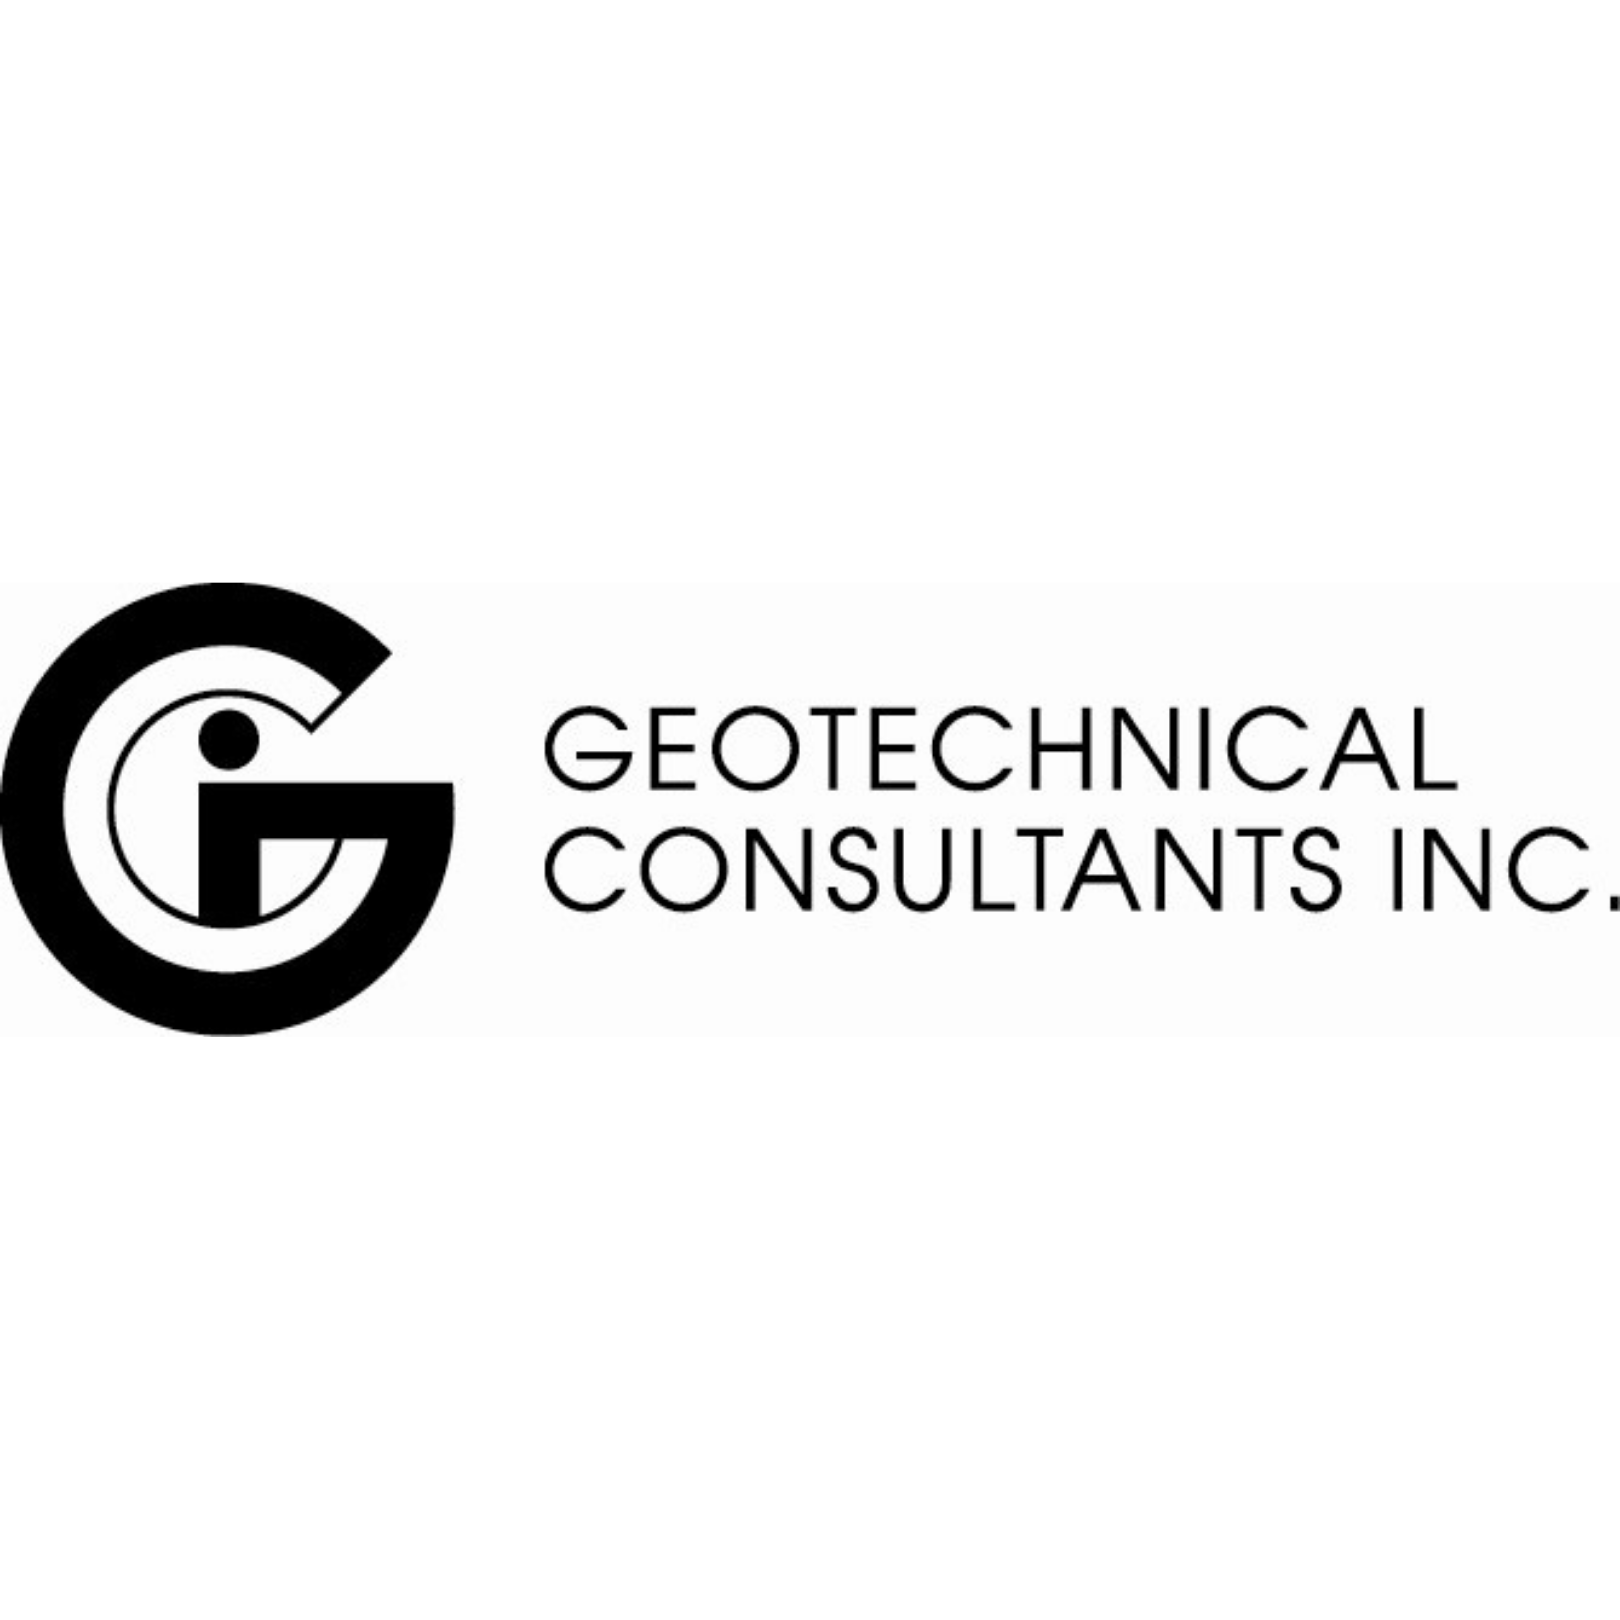 Geotechnical Consultants